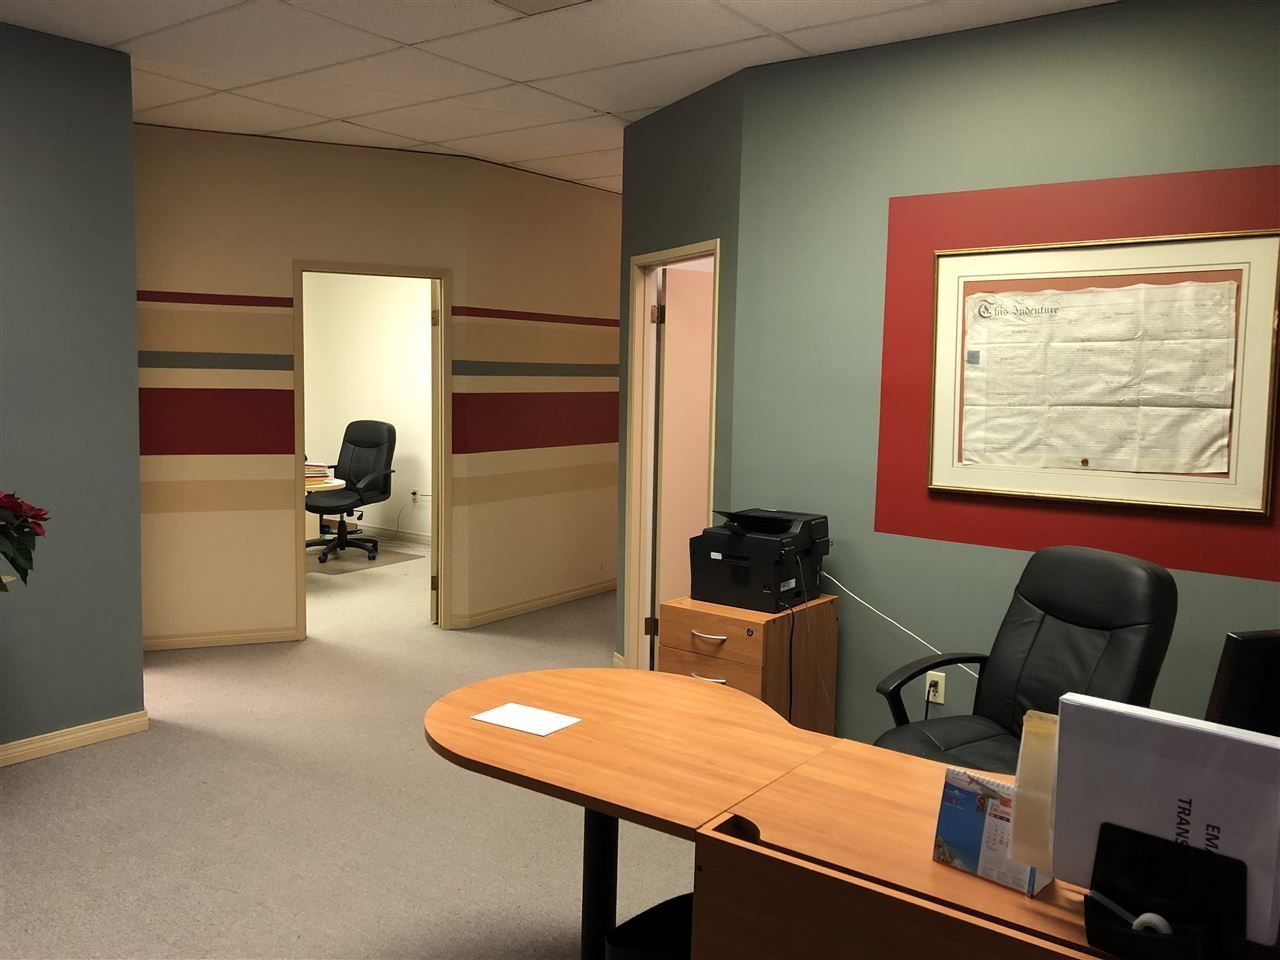 Main Photo: 205 31549 S FRASER Way in Abbotsford: Abbotsford West Office for lease : MLS®# C8022514